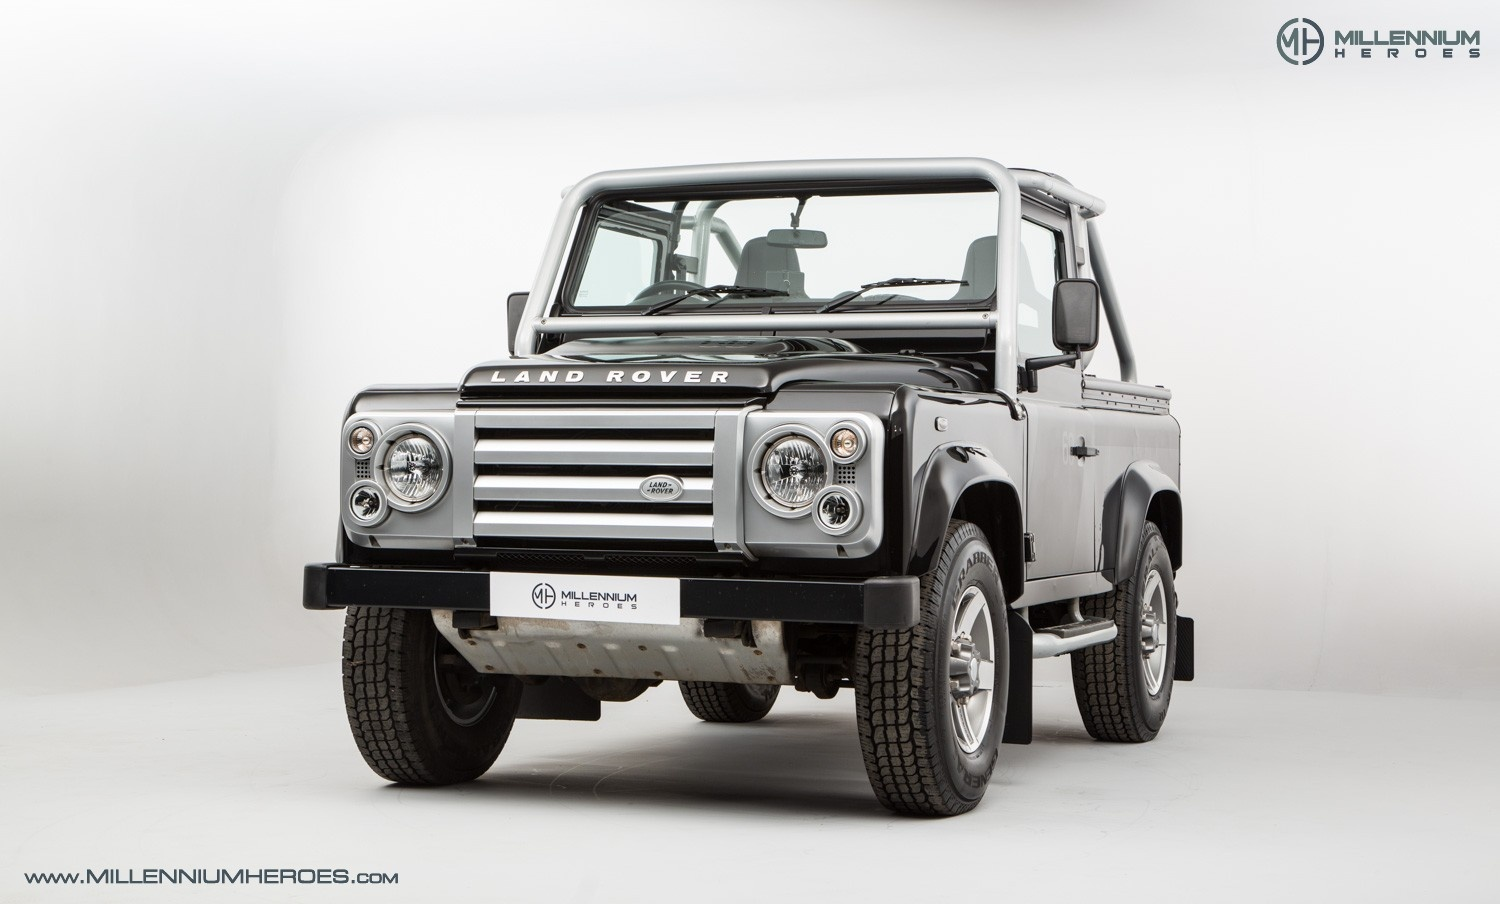 2009 Land Rover Defender - 90 SVX Soft Top | Classic Driver